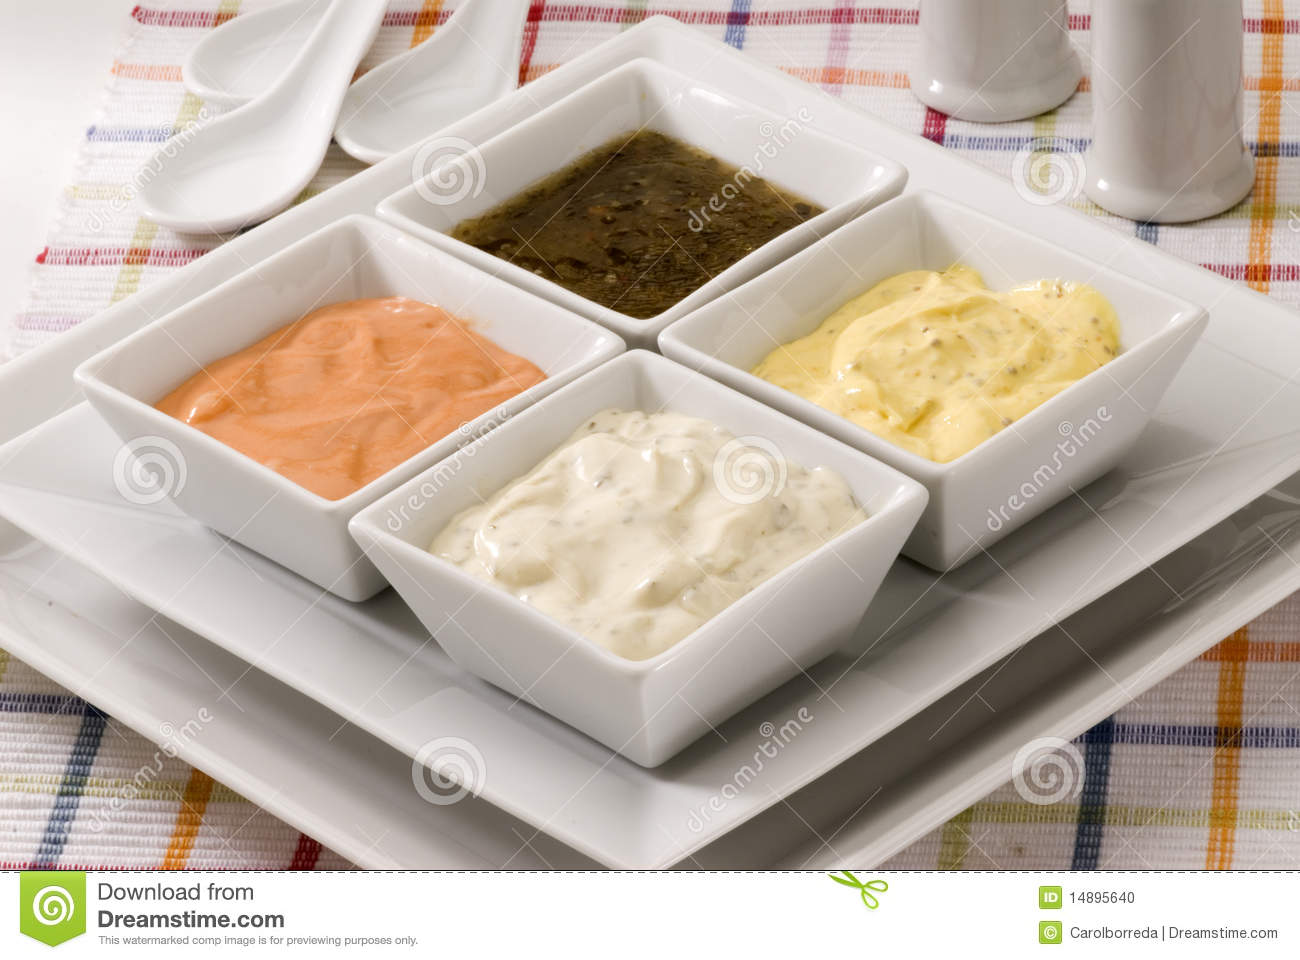 Assorted sauces.